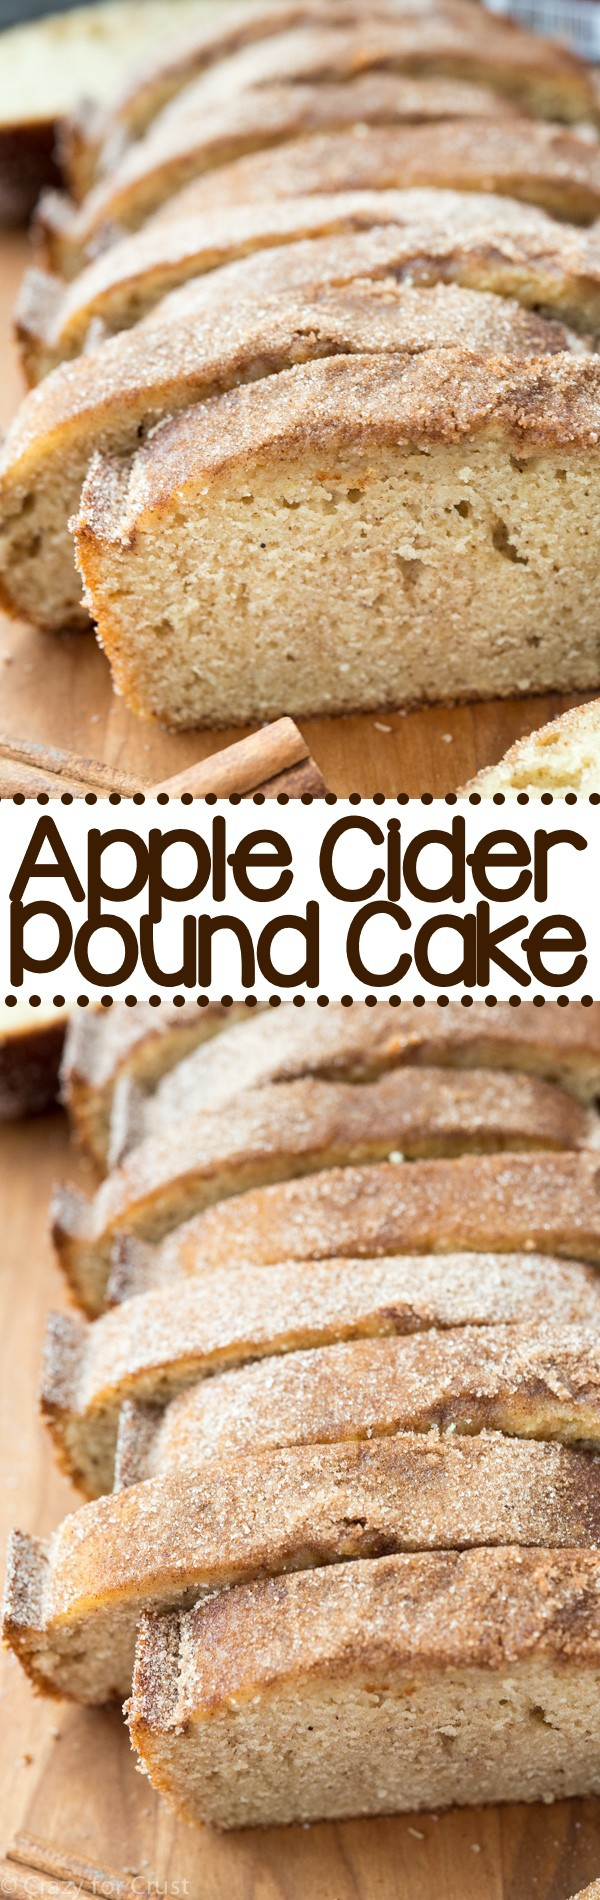 Apple Cider Pound Cake - an easy pound cake that tastes like an apple cider doughnut!